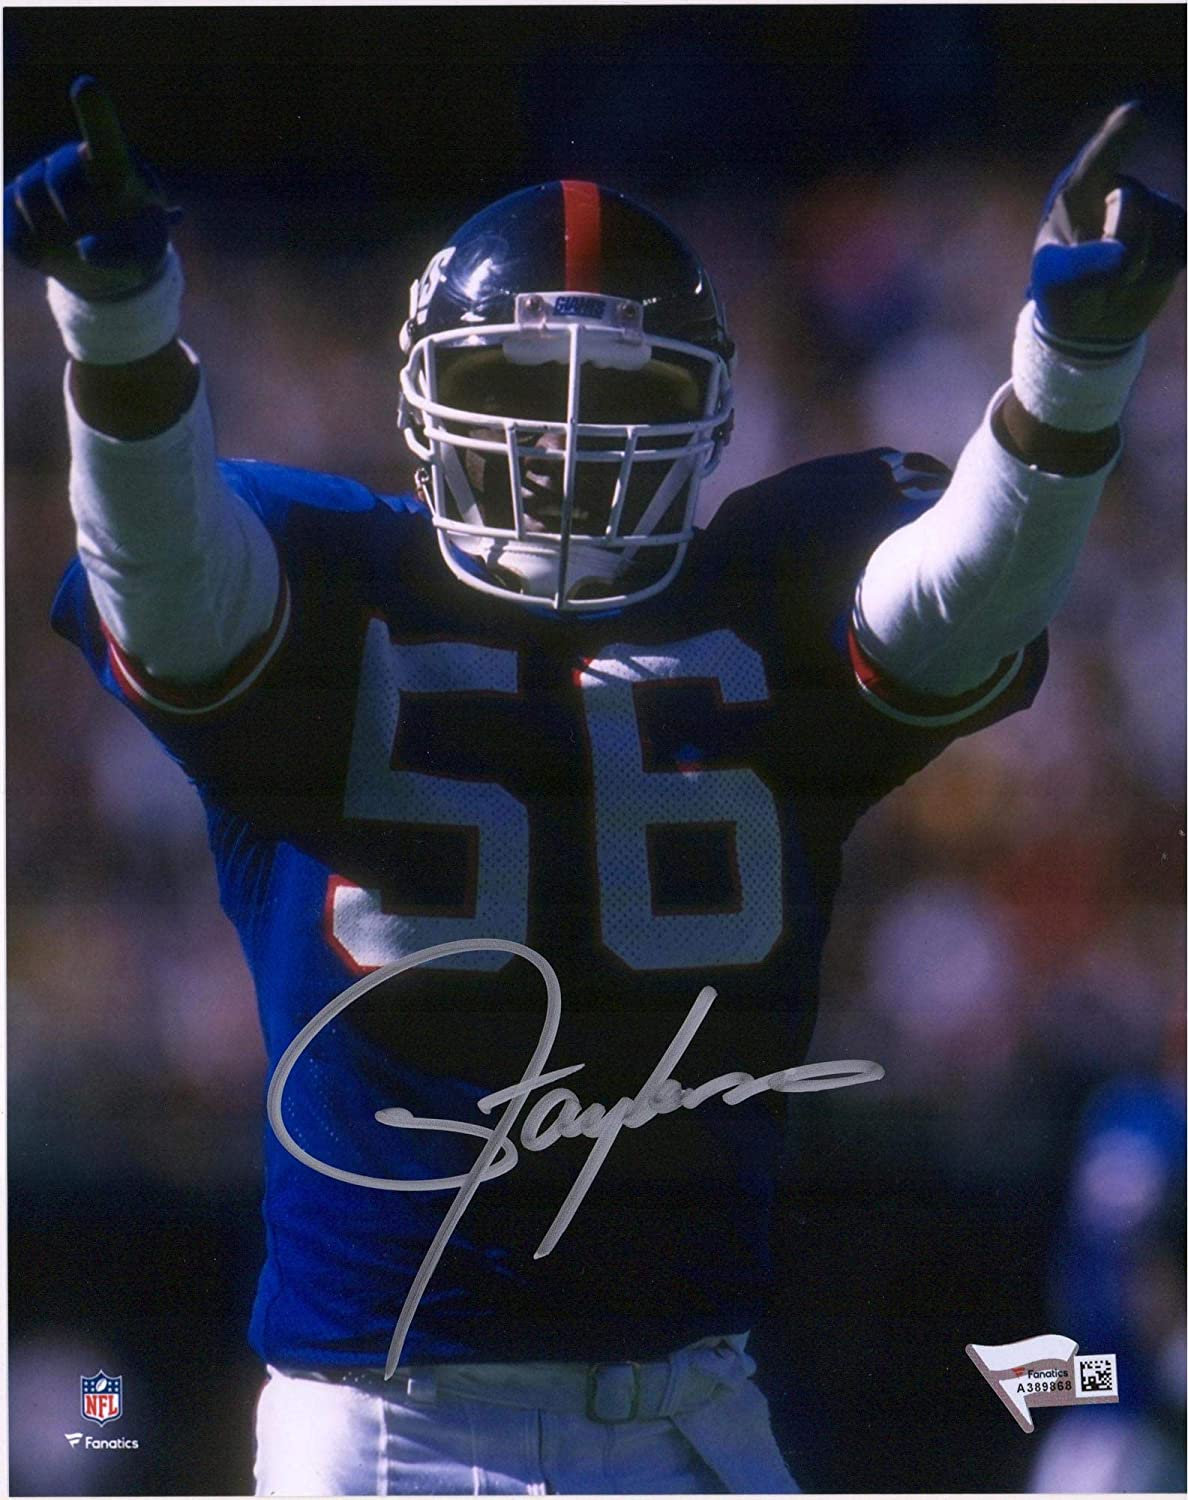 Lawrence Taylor New York Giants Autographed 8' x 10' Hands Pointed Photograph - Fanatics Authentic Certified